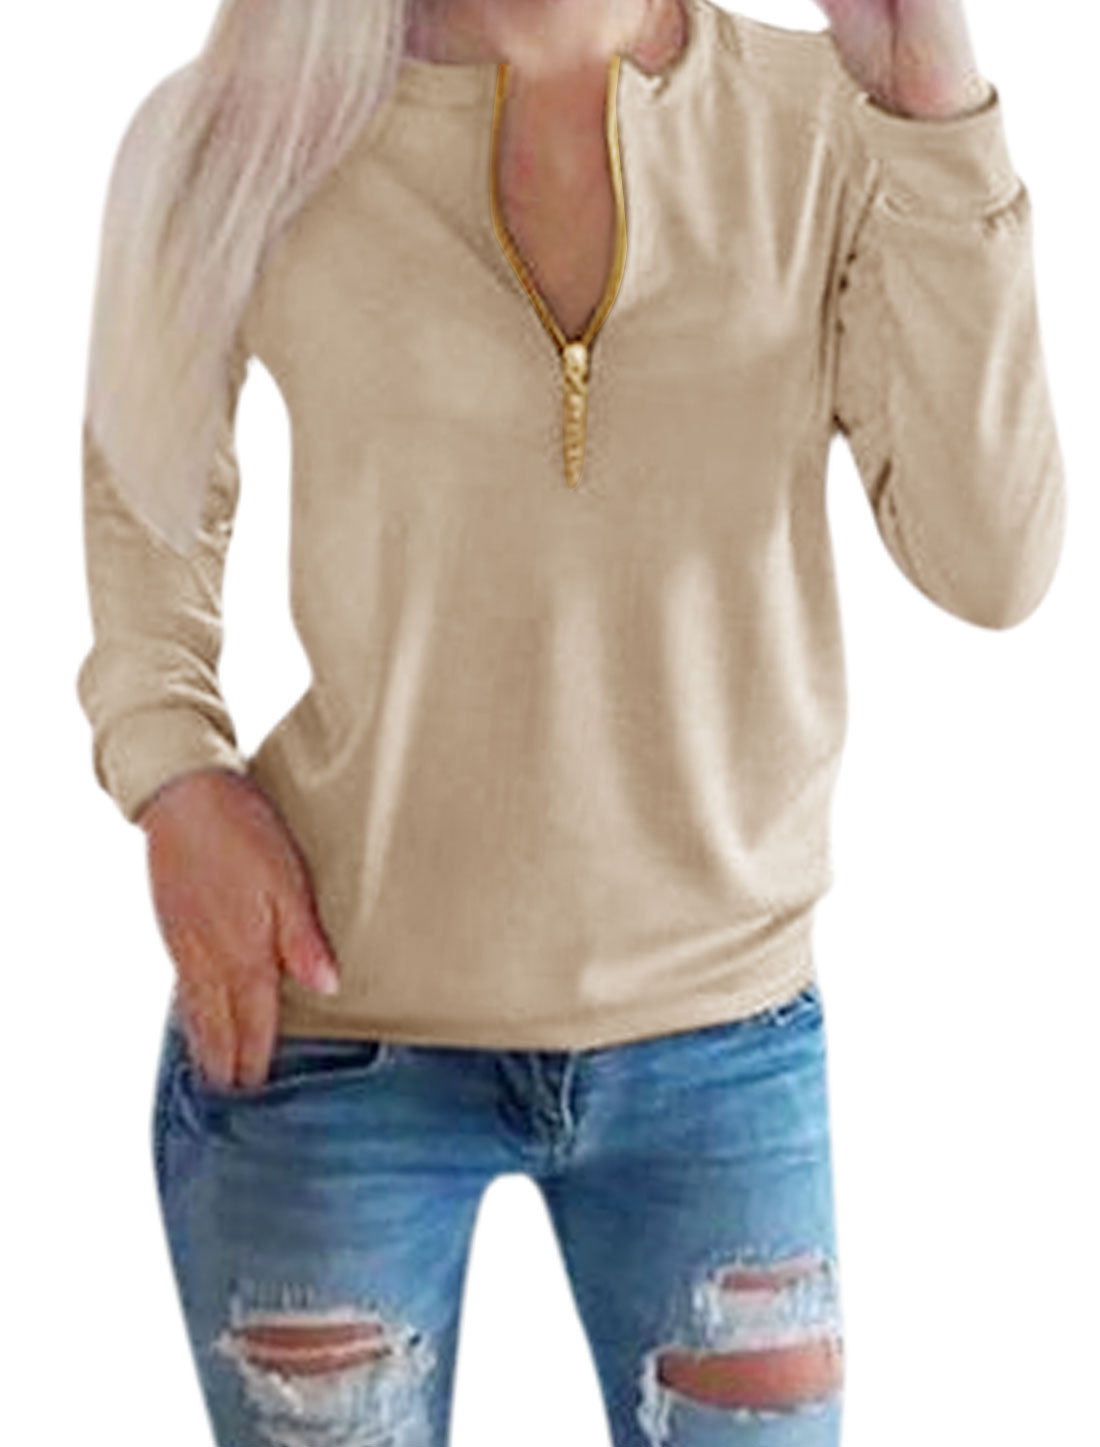 Lady Crew Neck Zip Closure Upper Chains Embellished Top Beige M